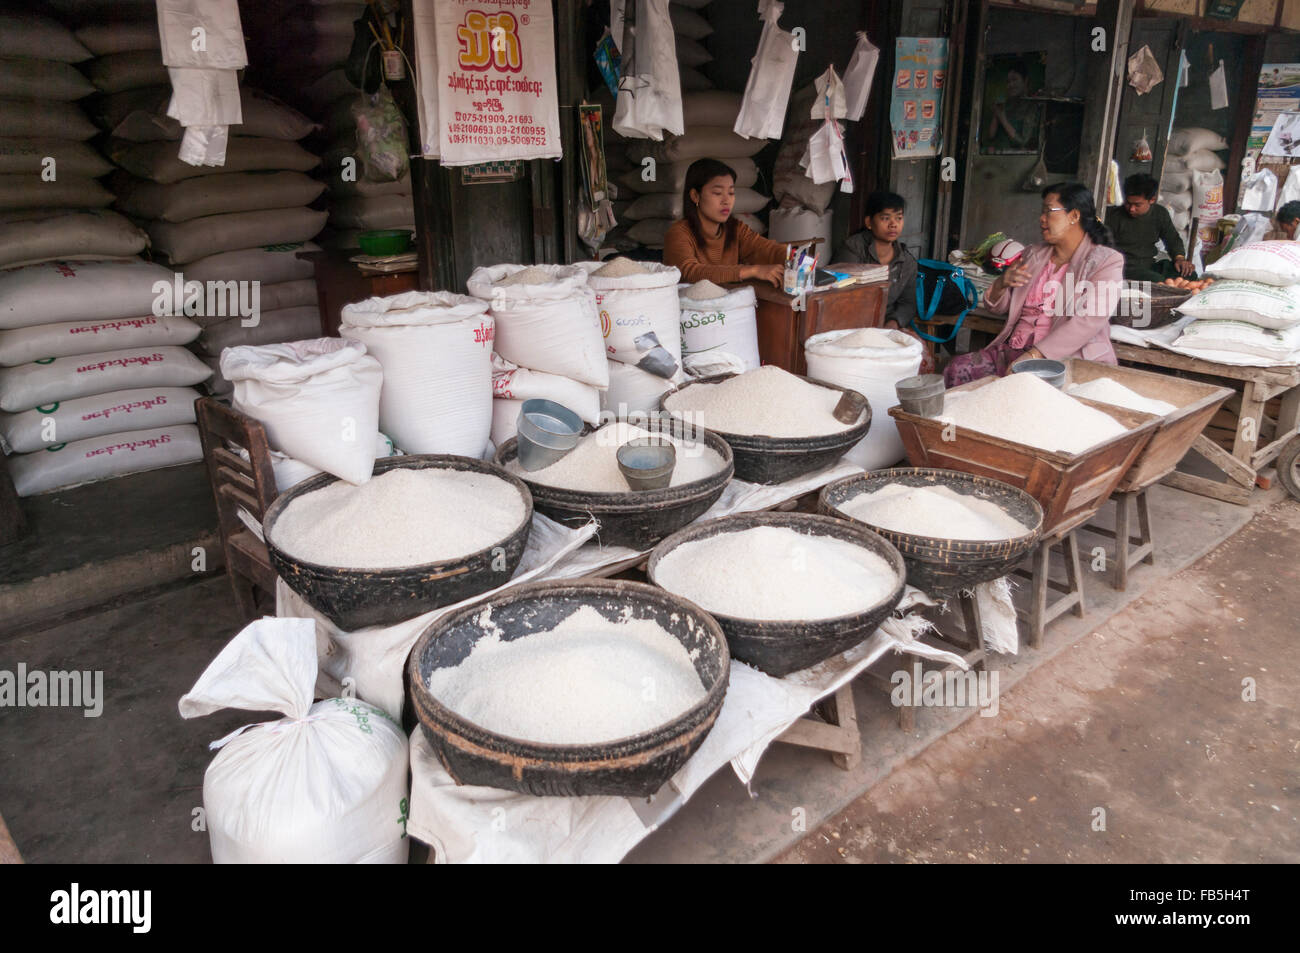 Large quantities of white rice on sale on a street market in Nyaung U, Bagan, Mandalay Region, Myanmar. - Stock Image